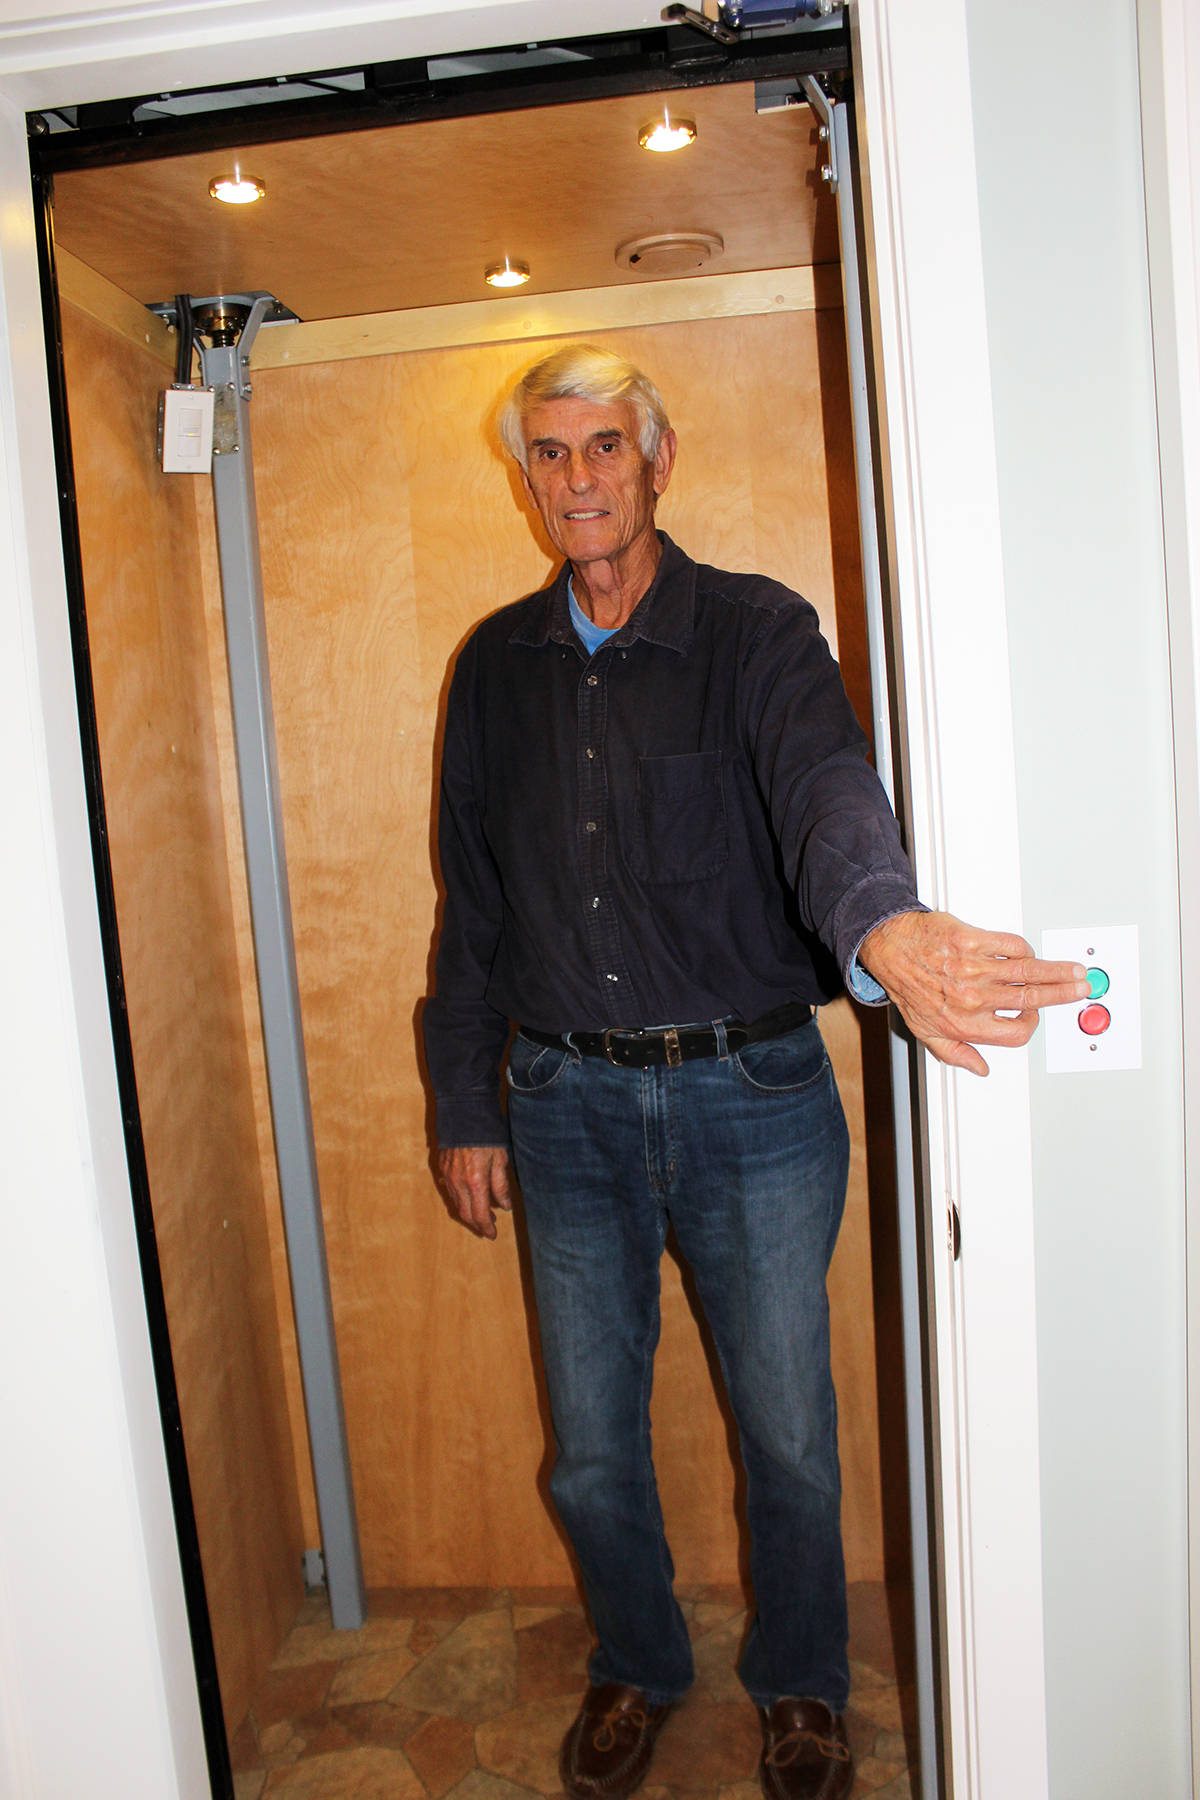 Pushing the right buttons sends Bob Higgins' elevator into operation. (Photo by Don Bodger)